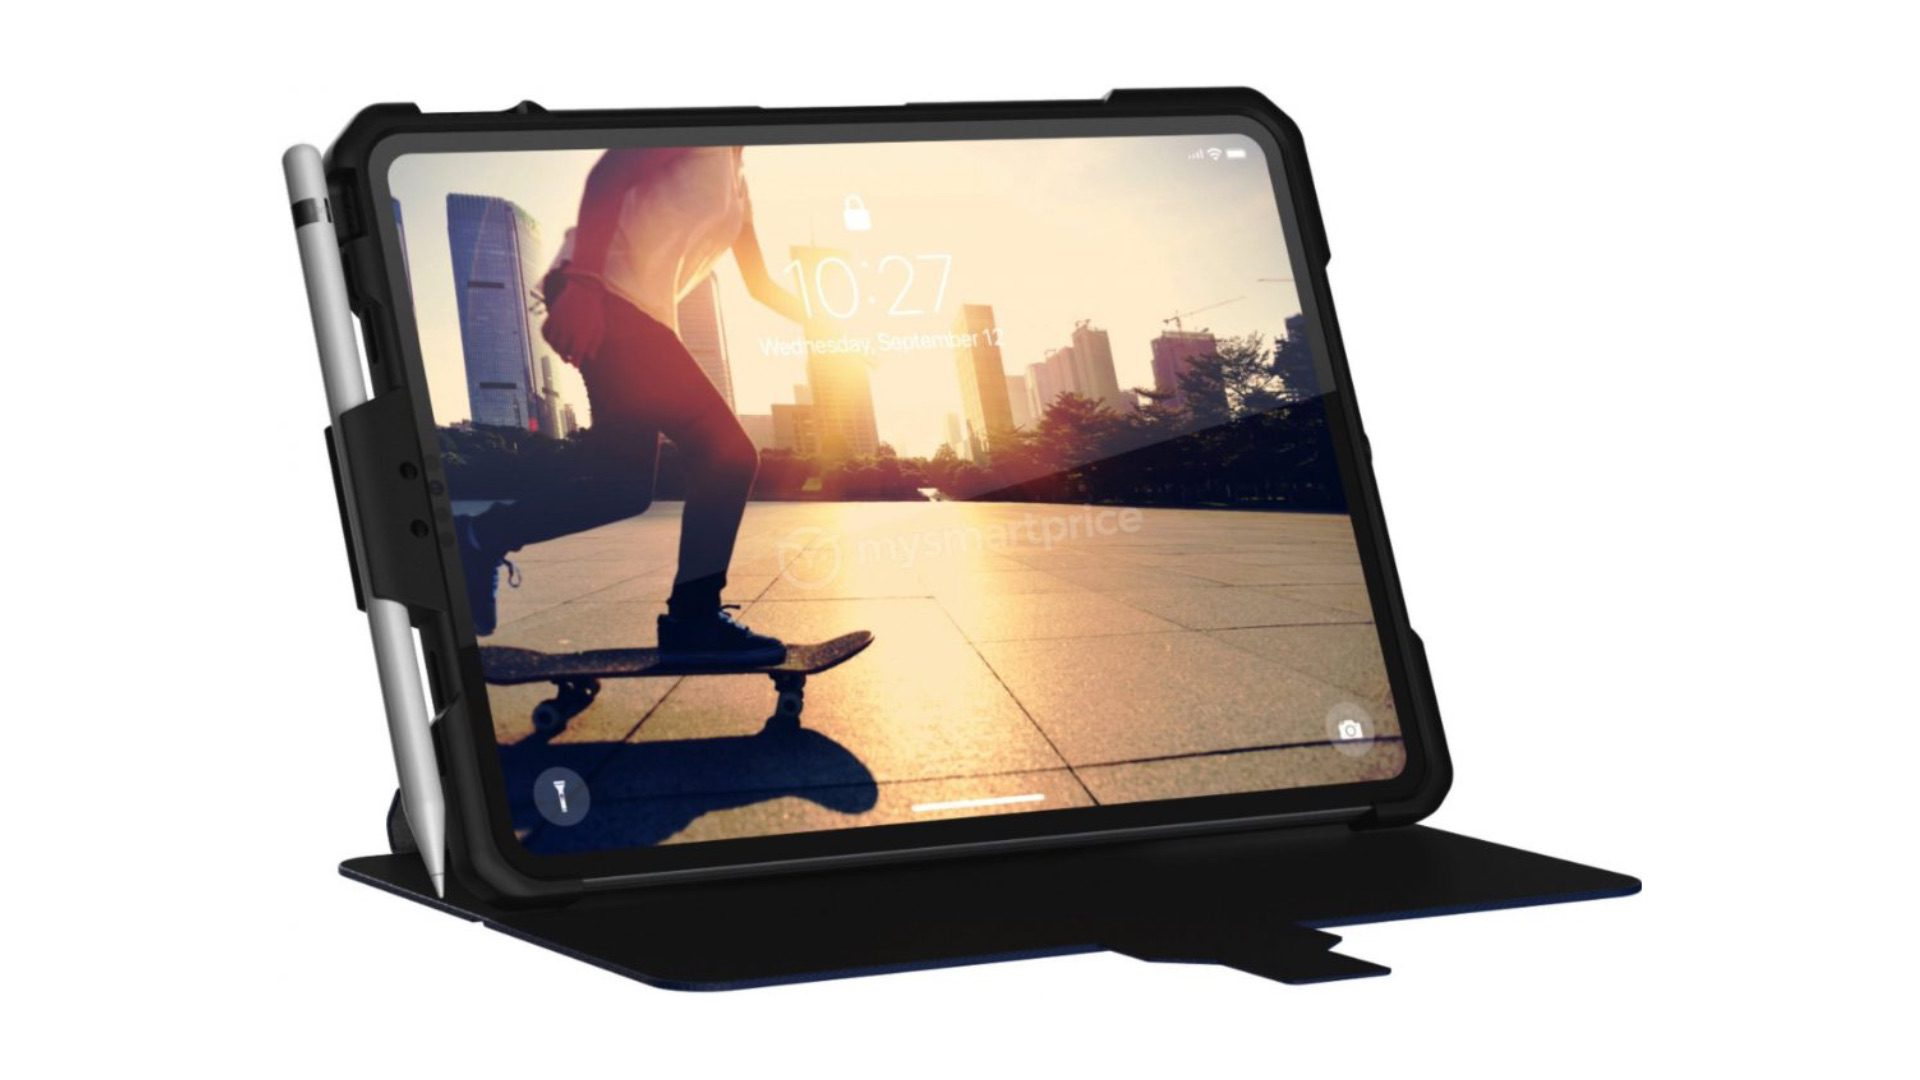 New confirmed cases of the iPad Pro 2018